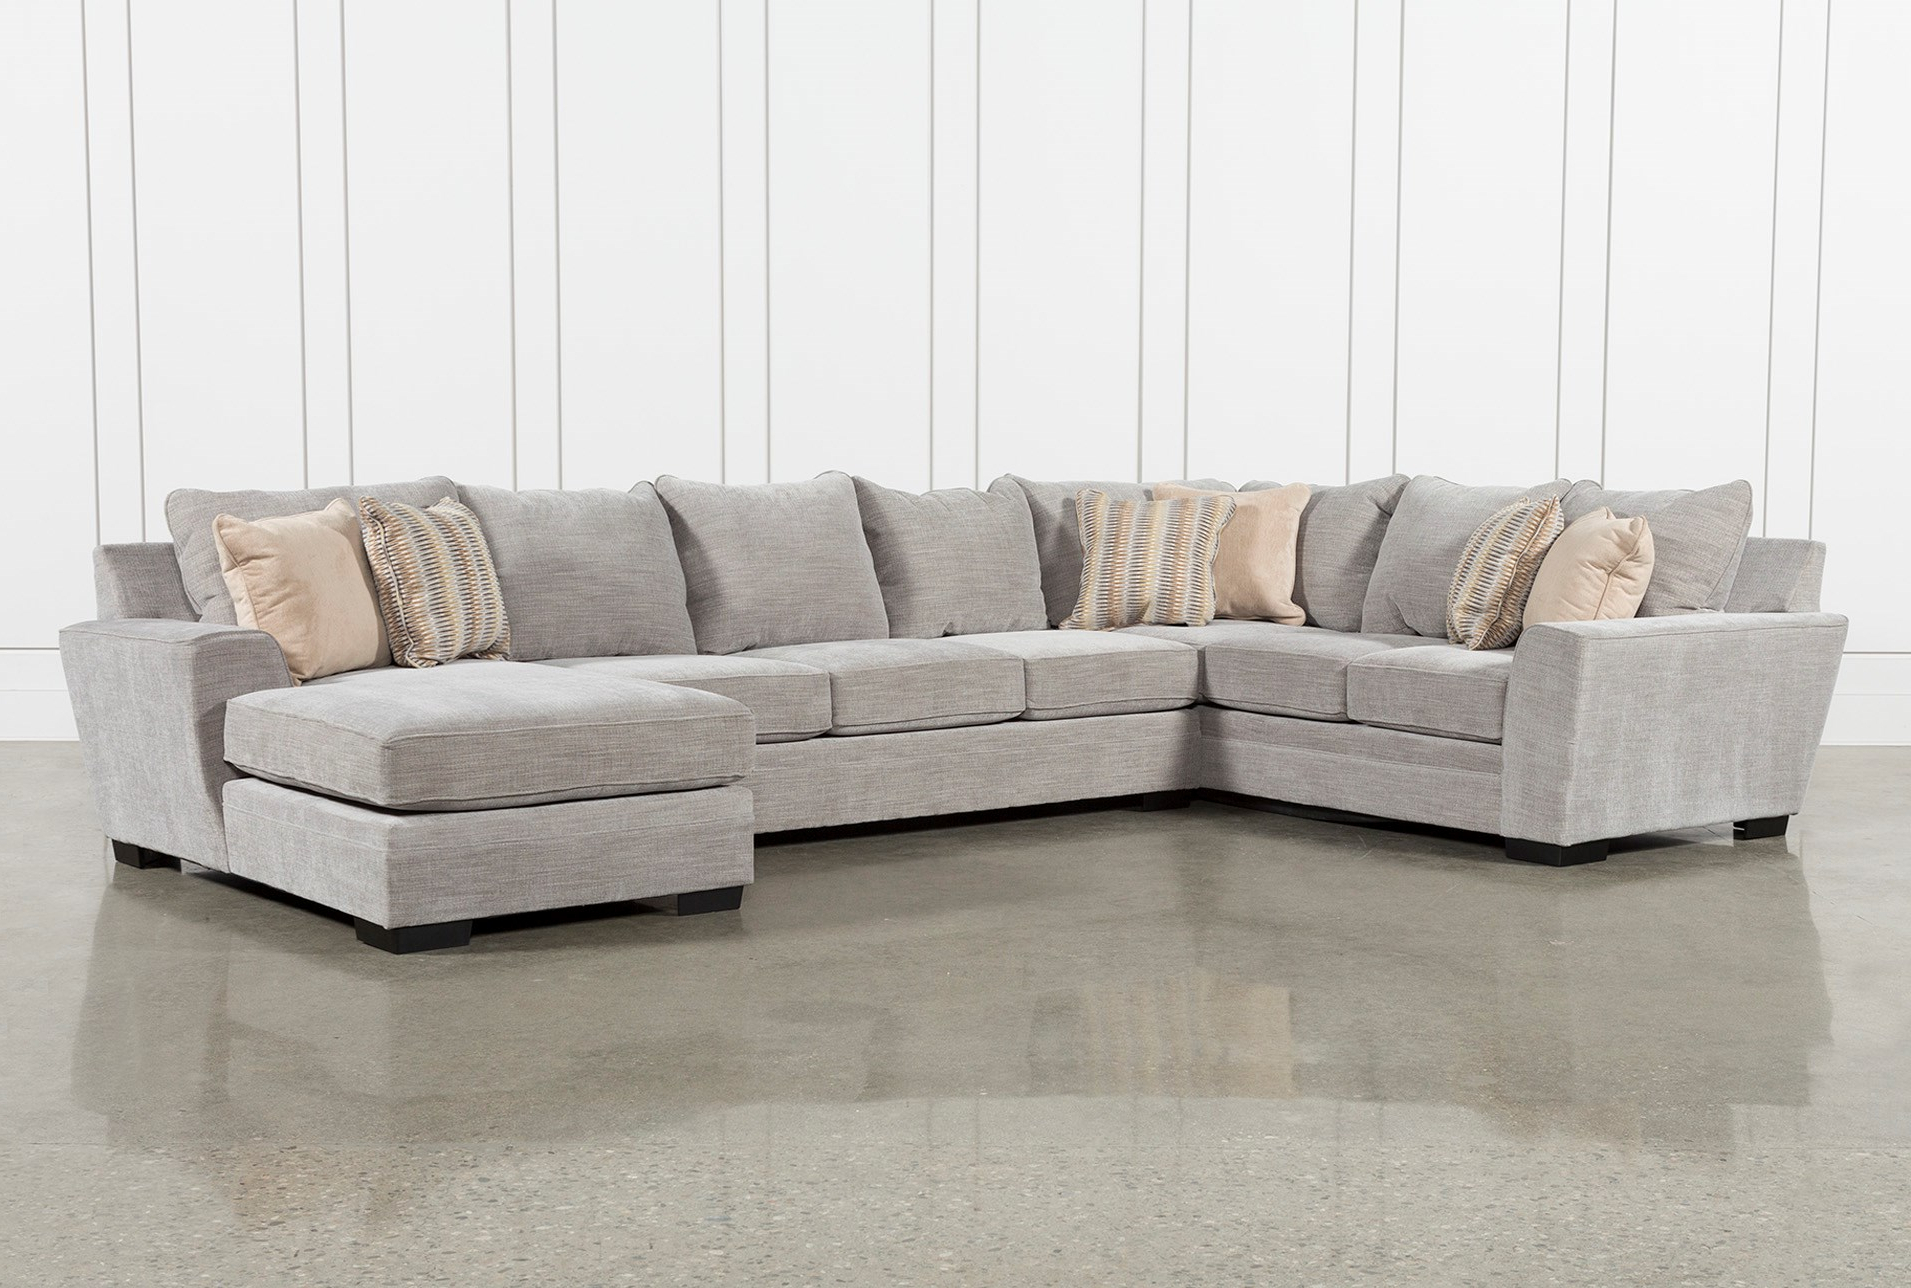 2019 Malbry Point 3 Piece Sectionals With Raf Chaise Intended For Delano Smoke 3 Piece Sectional Living Spaces – Locsbyhelenelorasa (View 3 of 20)